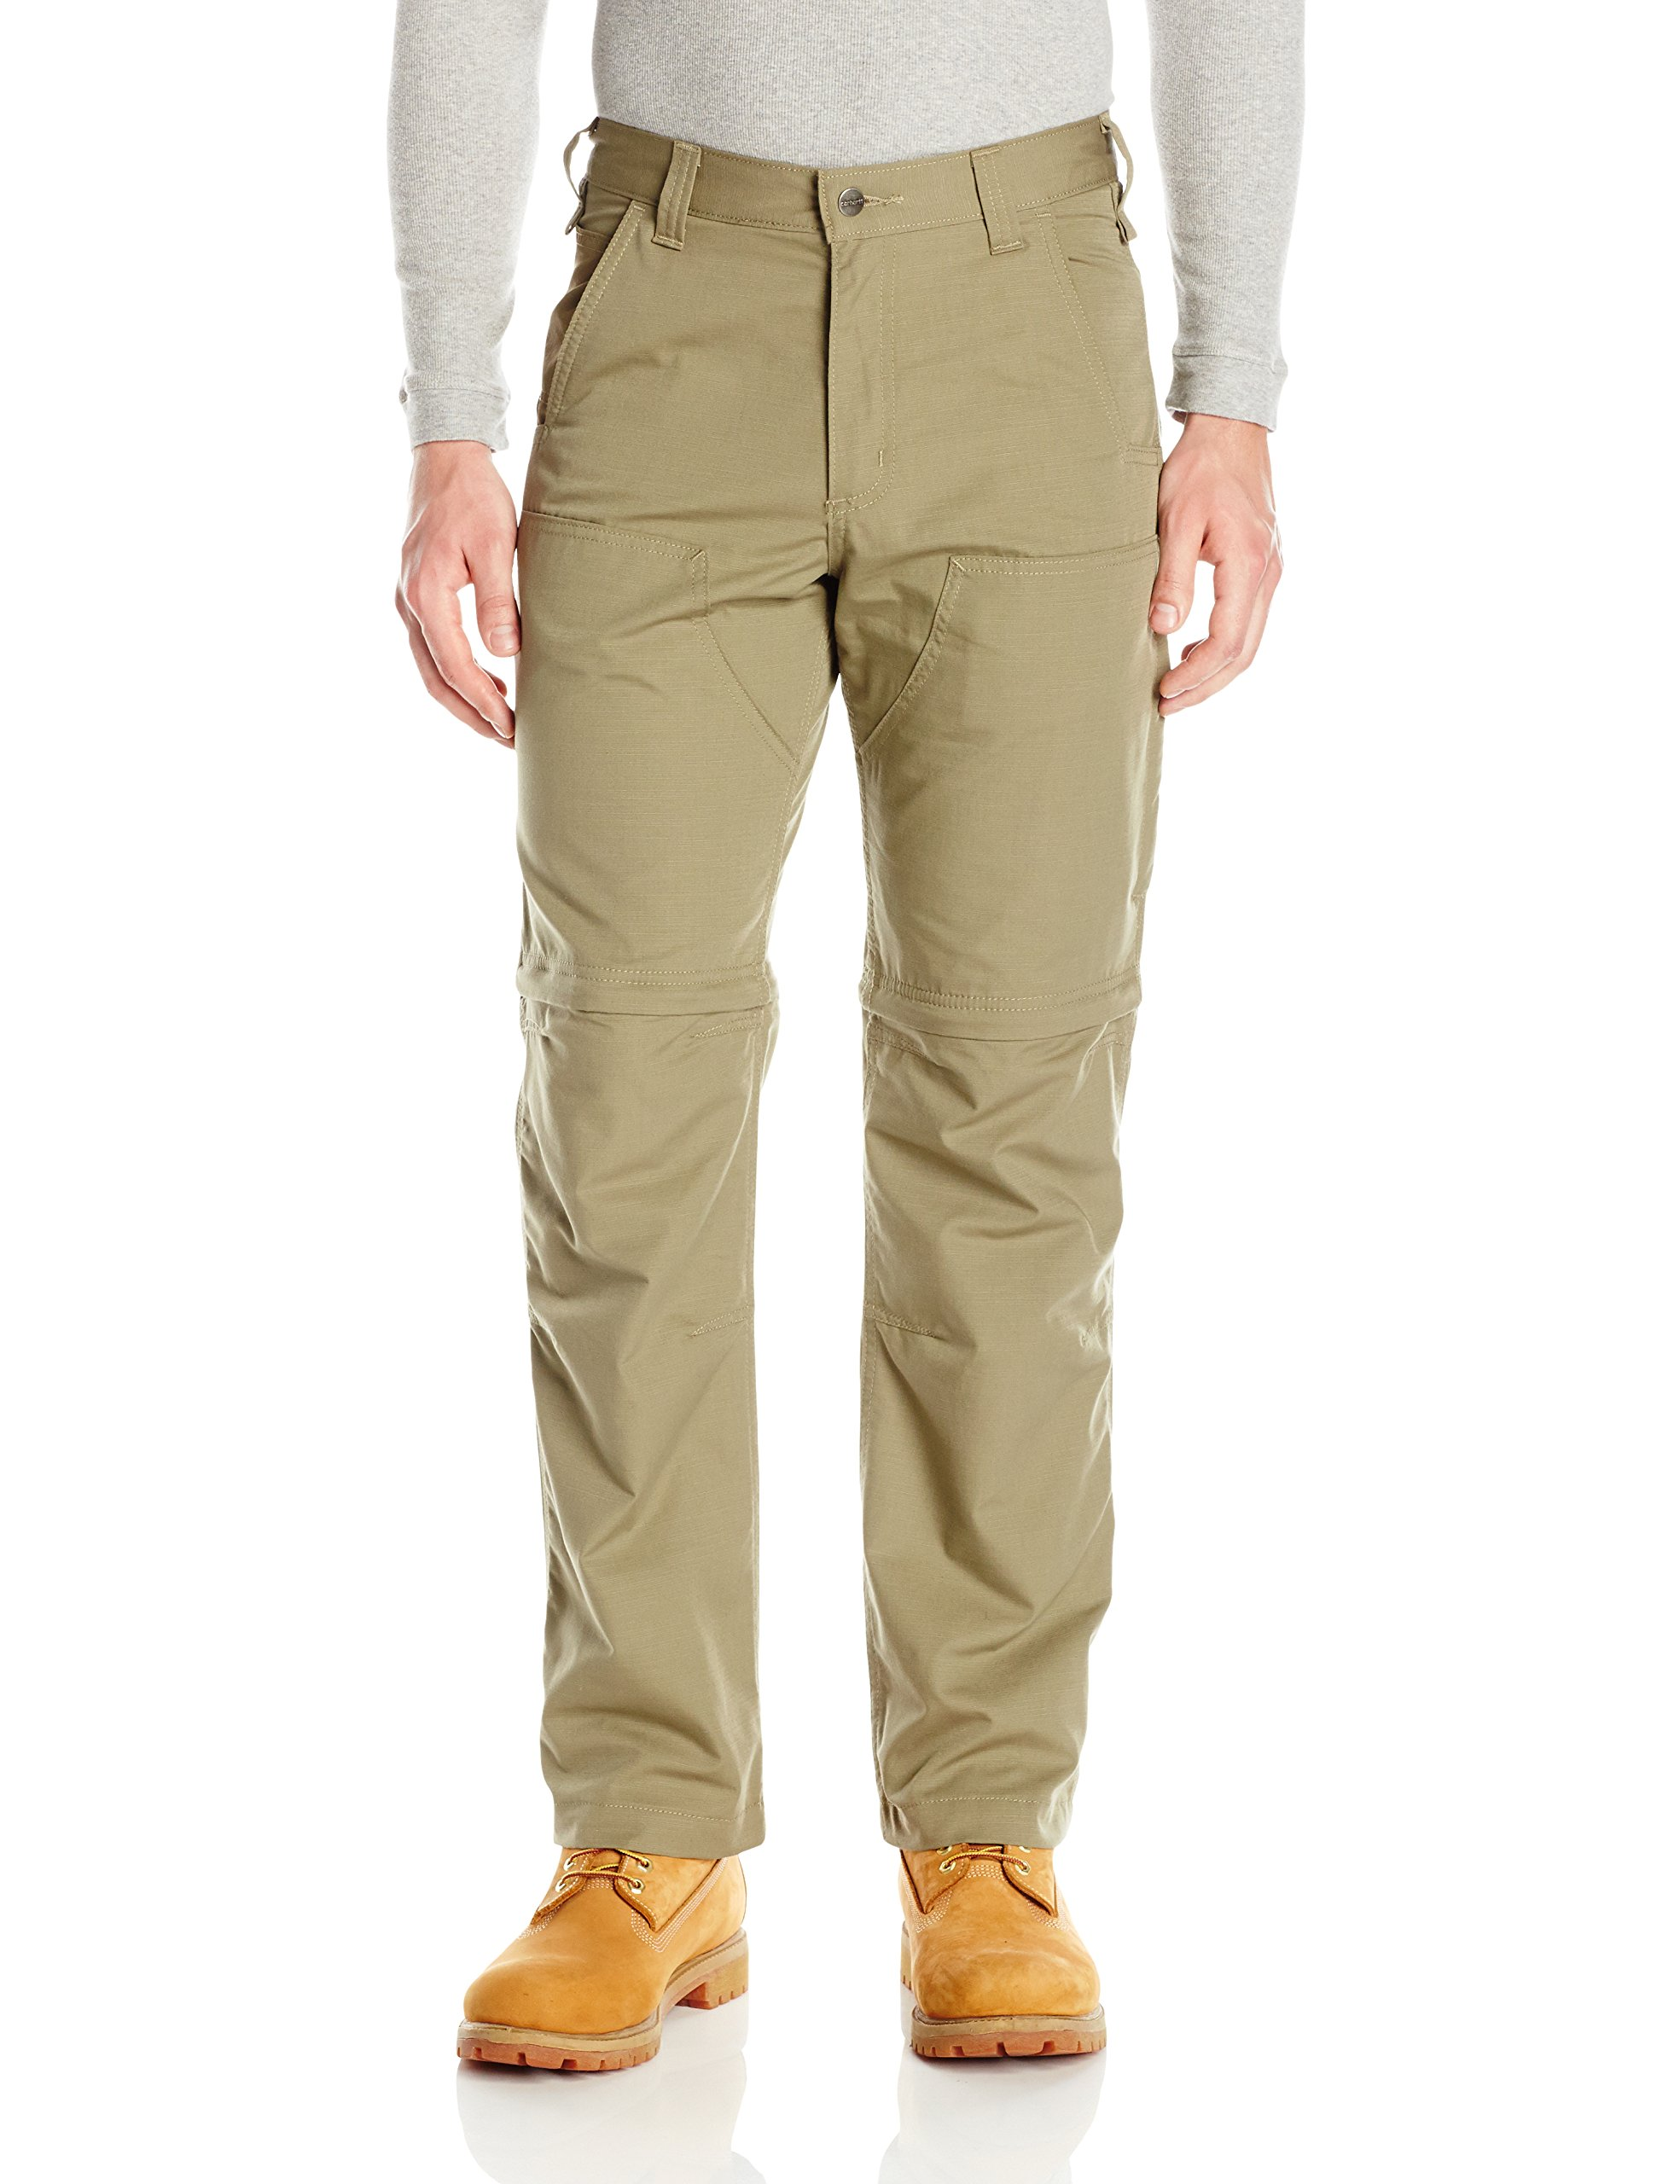 Carhartt Men's Force Extremes Convertible Pant, Burnt Olive, 34W X 30L